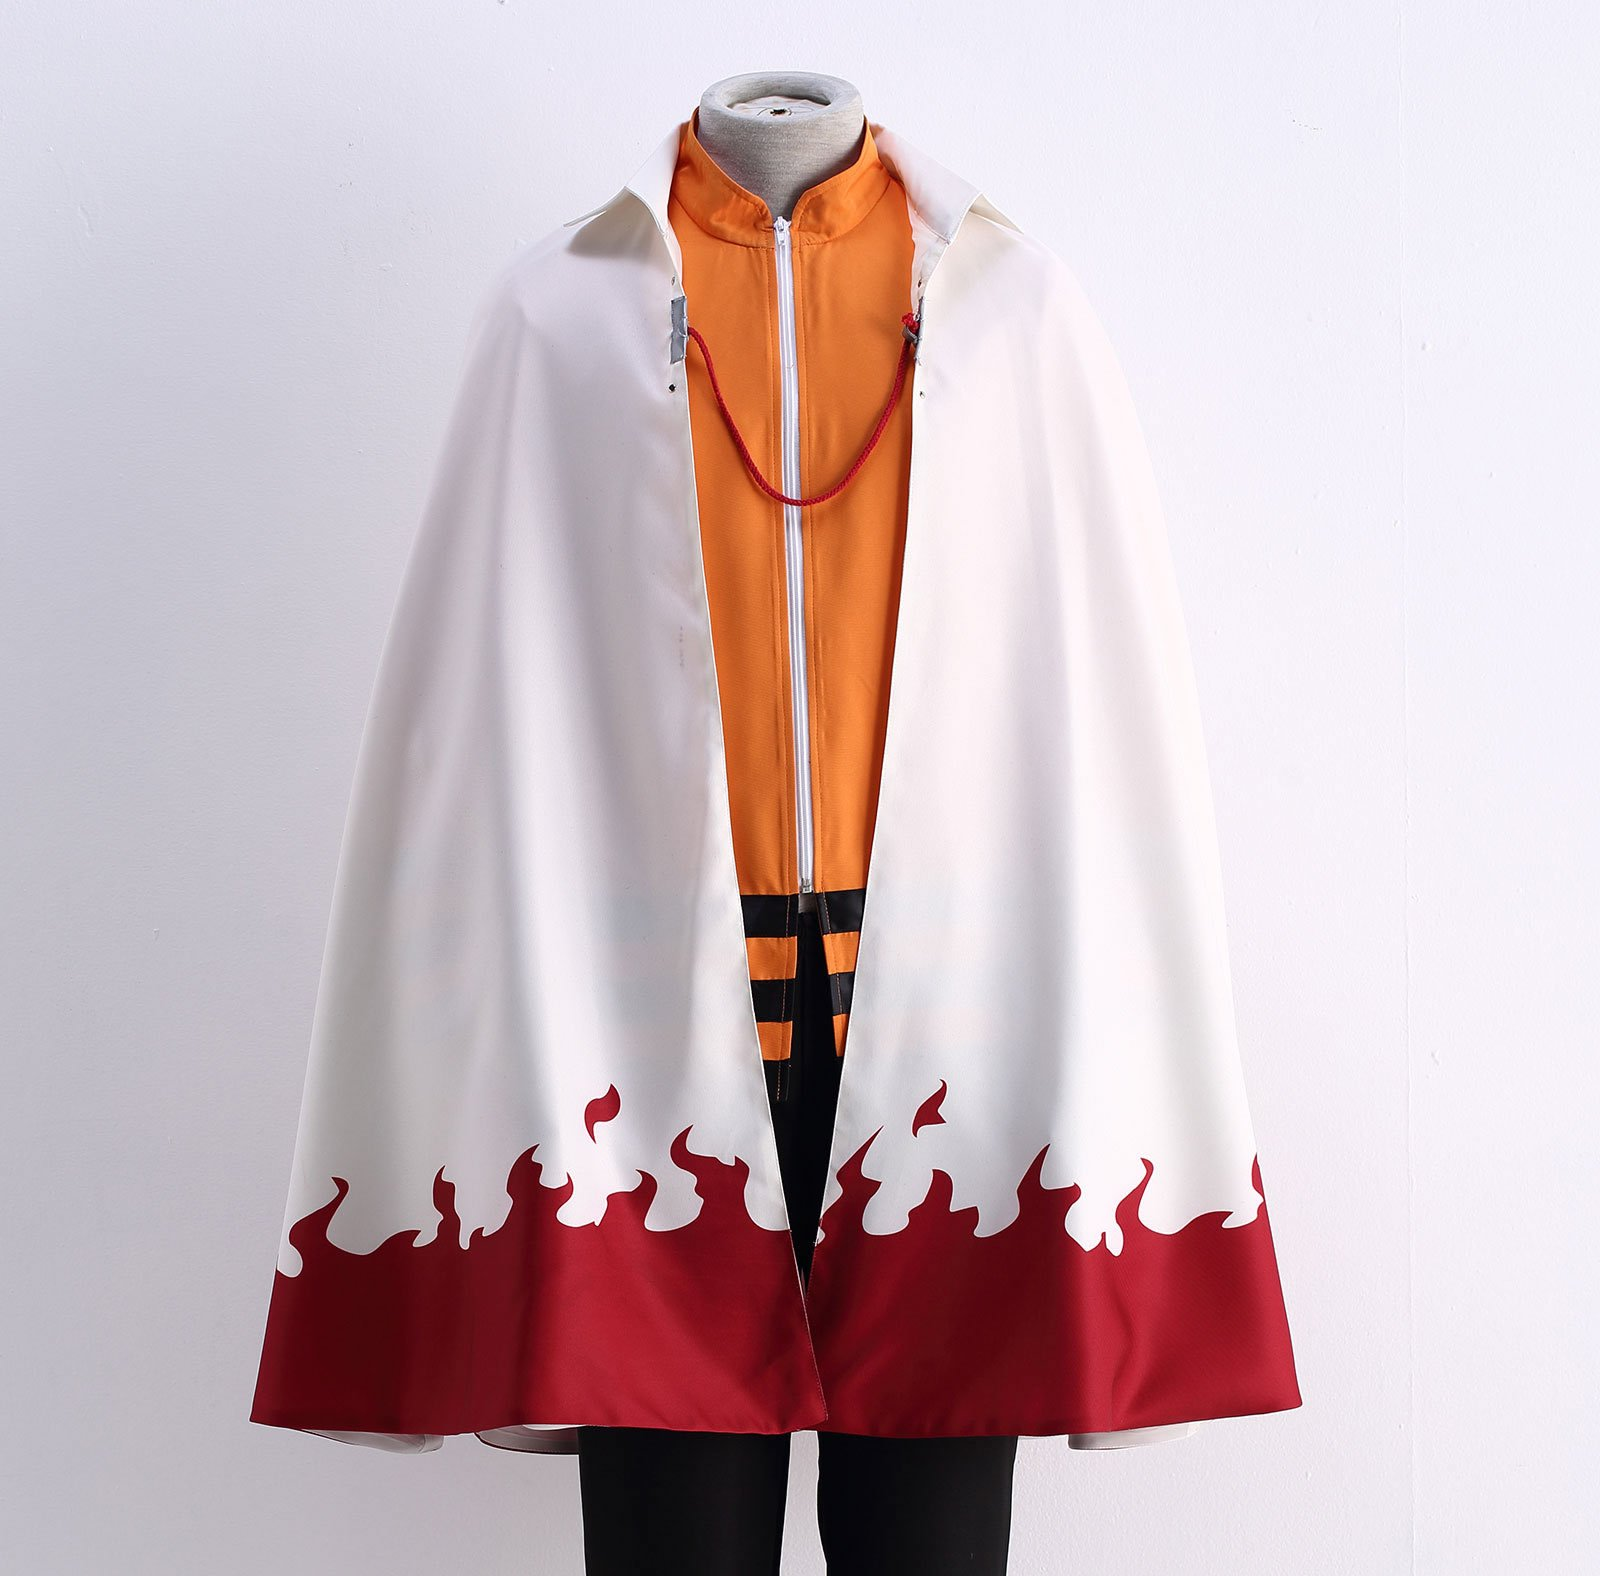 OURCOSPLAY US Size Men's Uzumaki Cloak 7th Hokage Cloak Boruto Cosplay Costume (Men US XL) by OURCOSPLAY (Image #4)